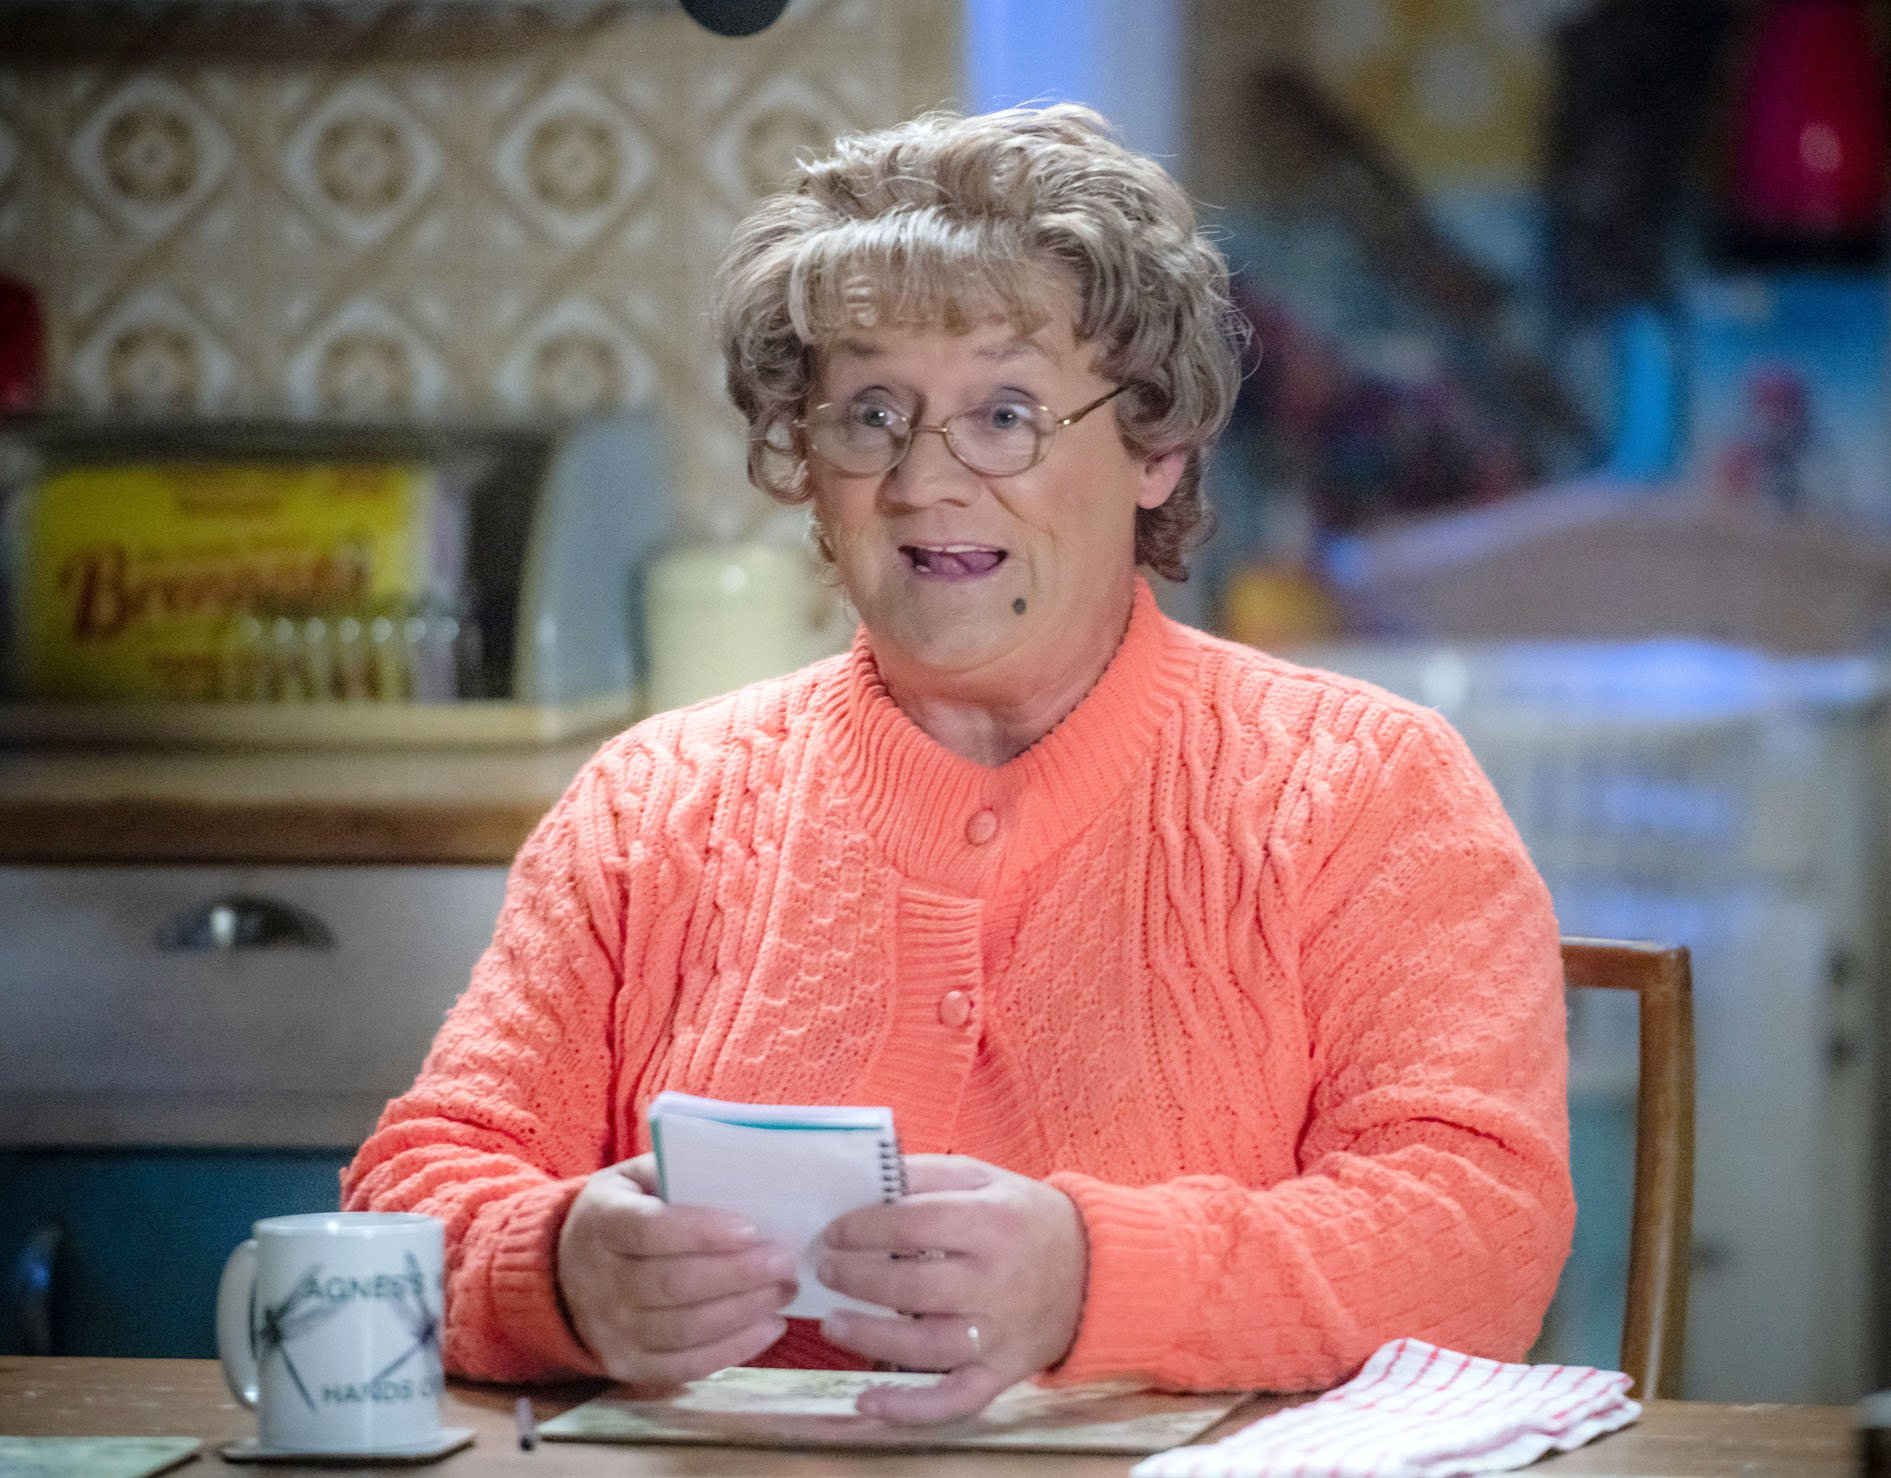 Mrs Brown's Boys star Brendan O'Carroll hits back at backlash over foul-language